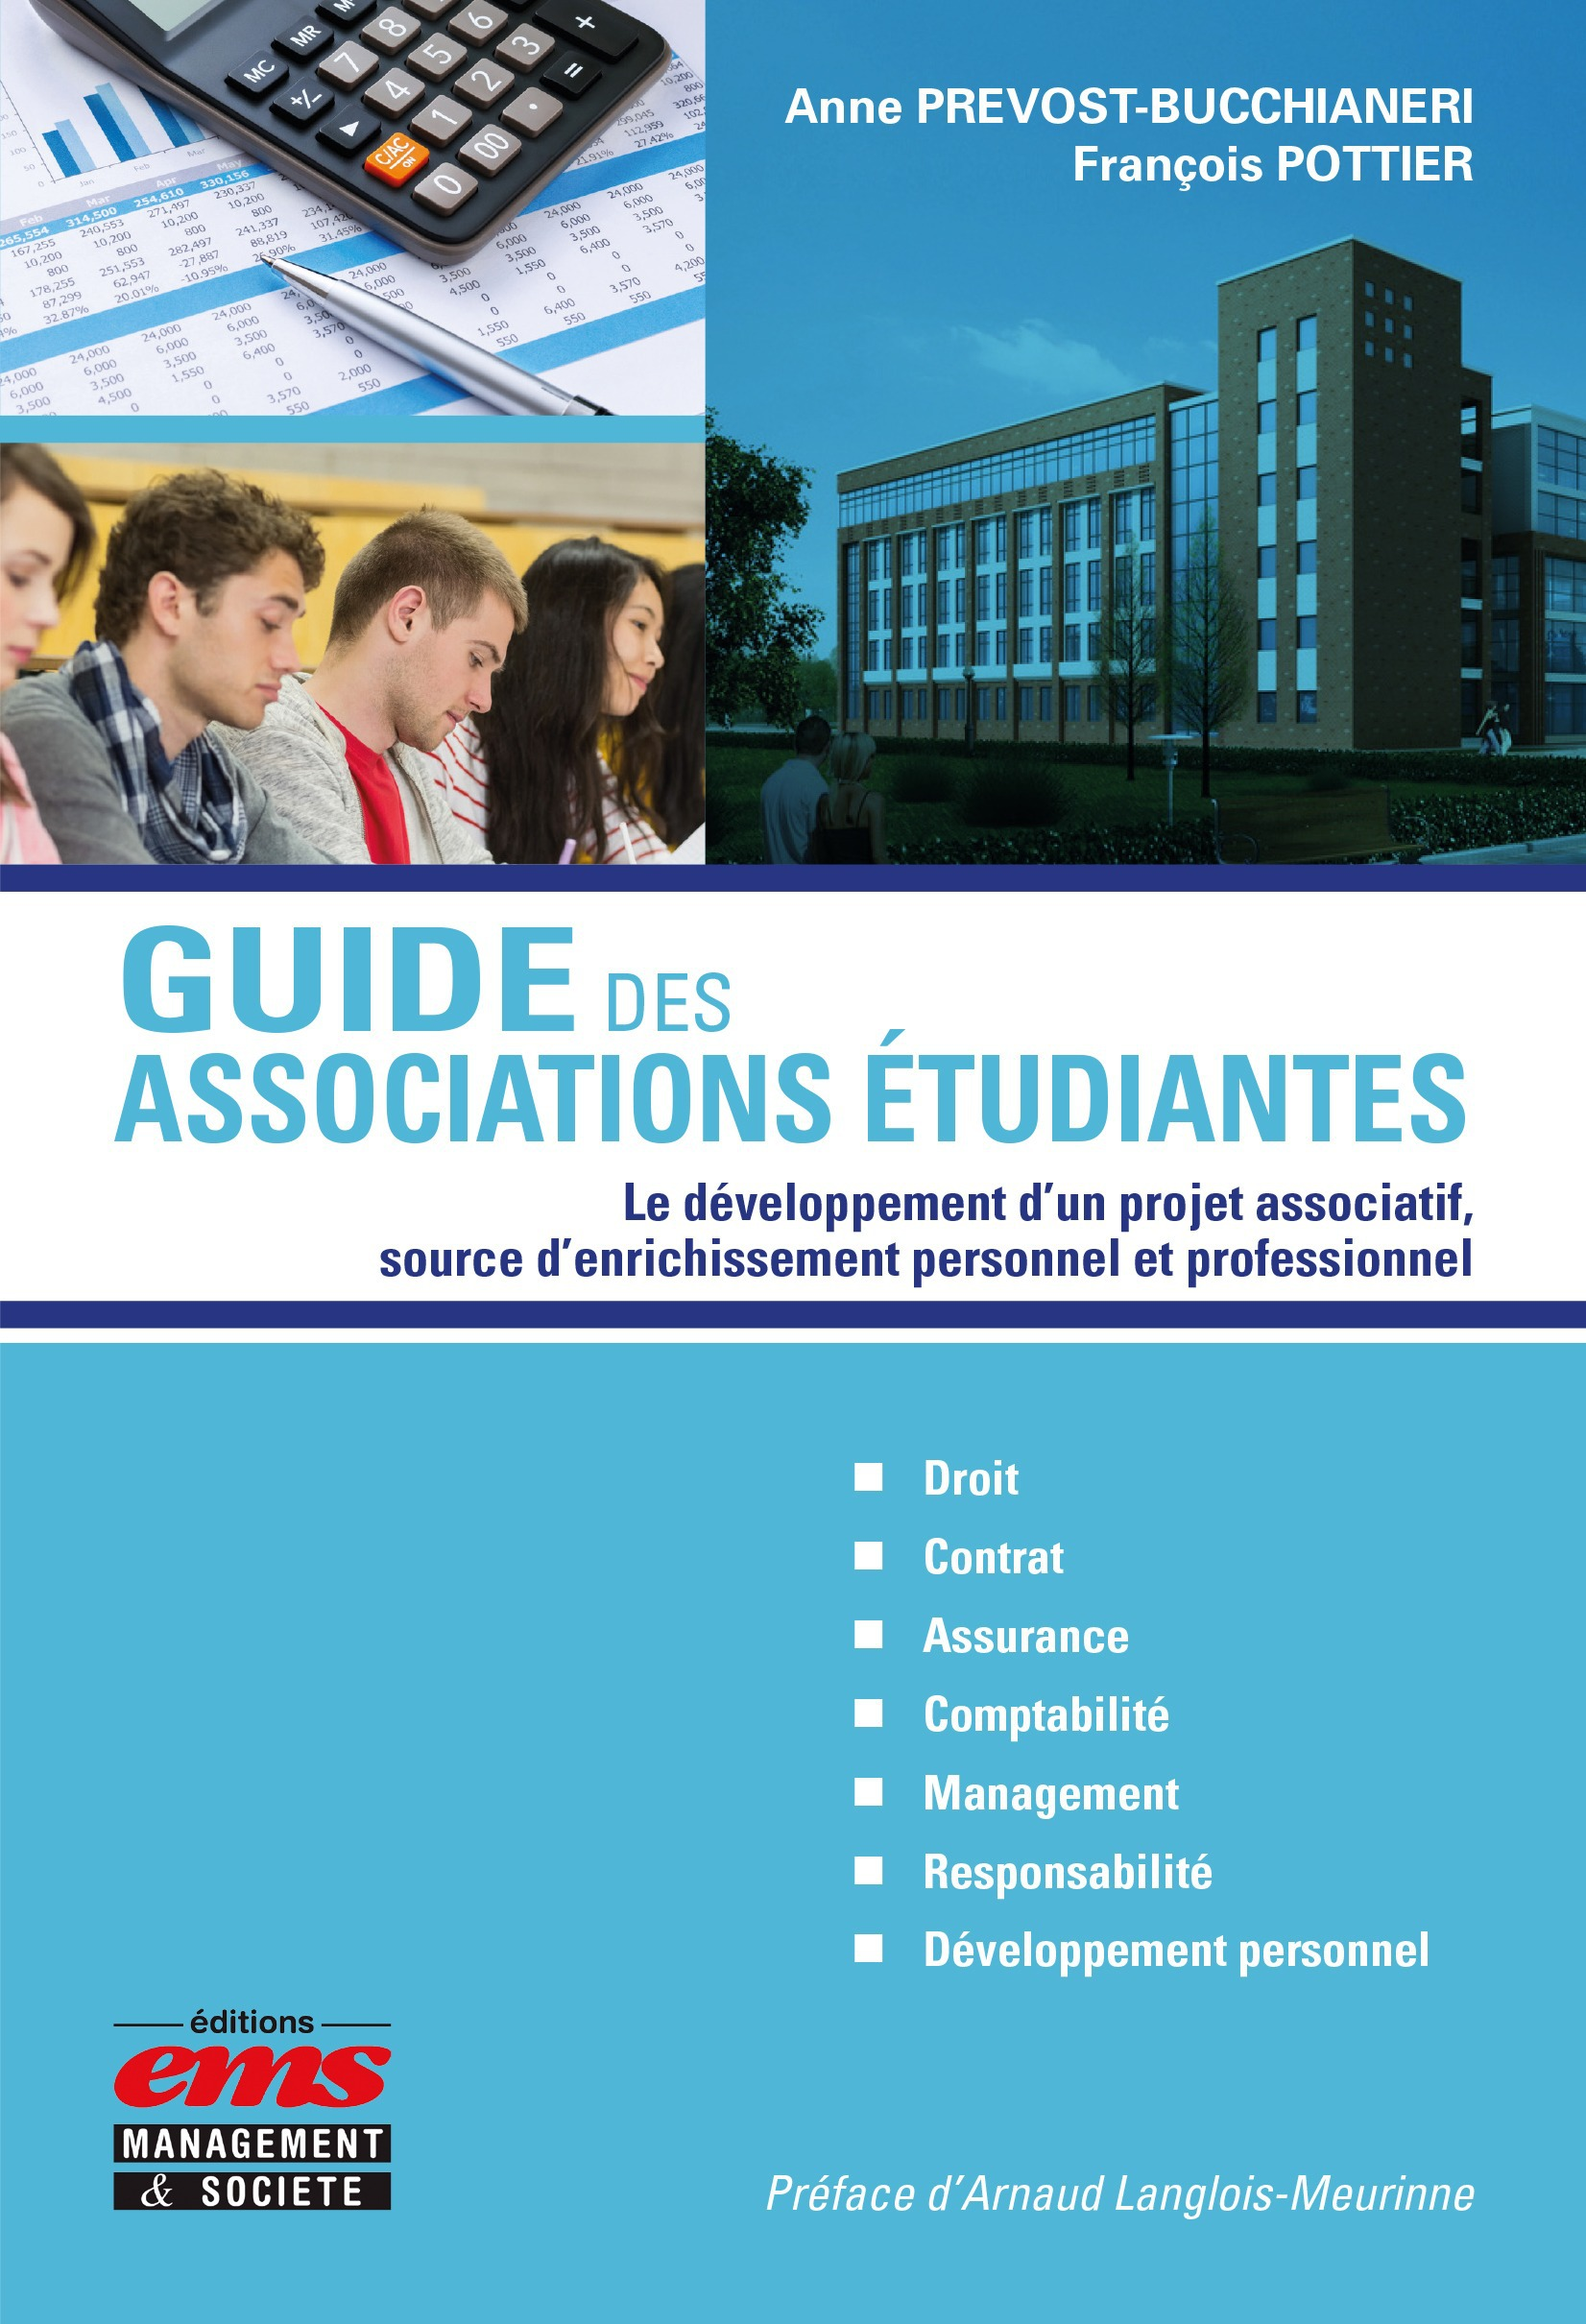 François Pottier Guide des associations étudiantes